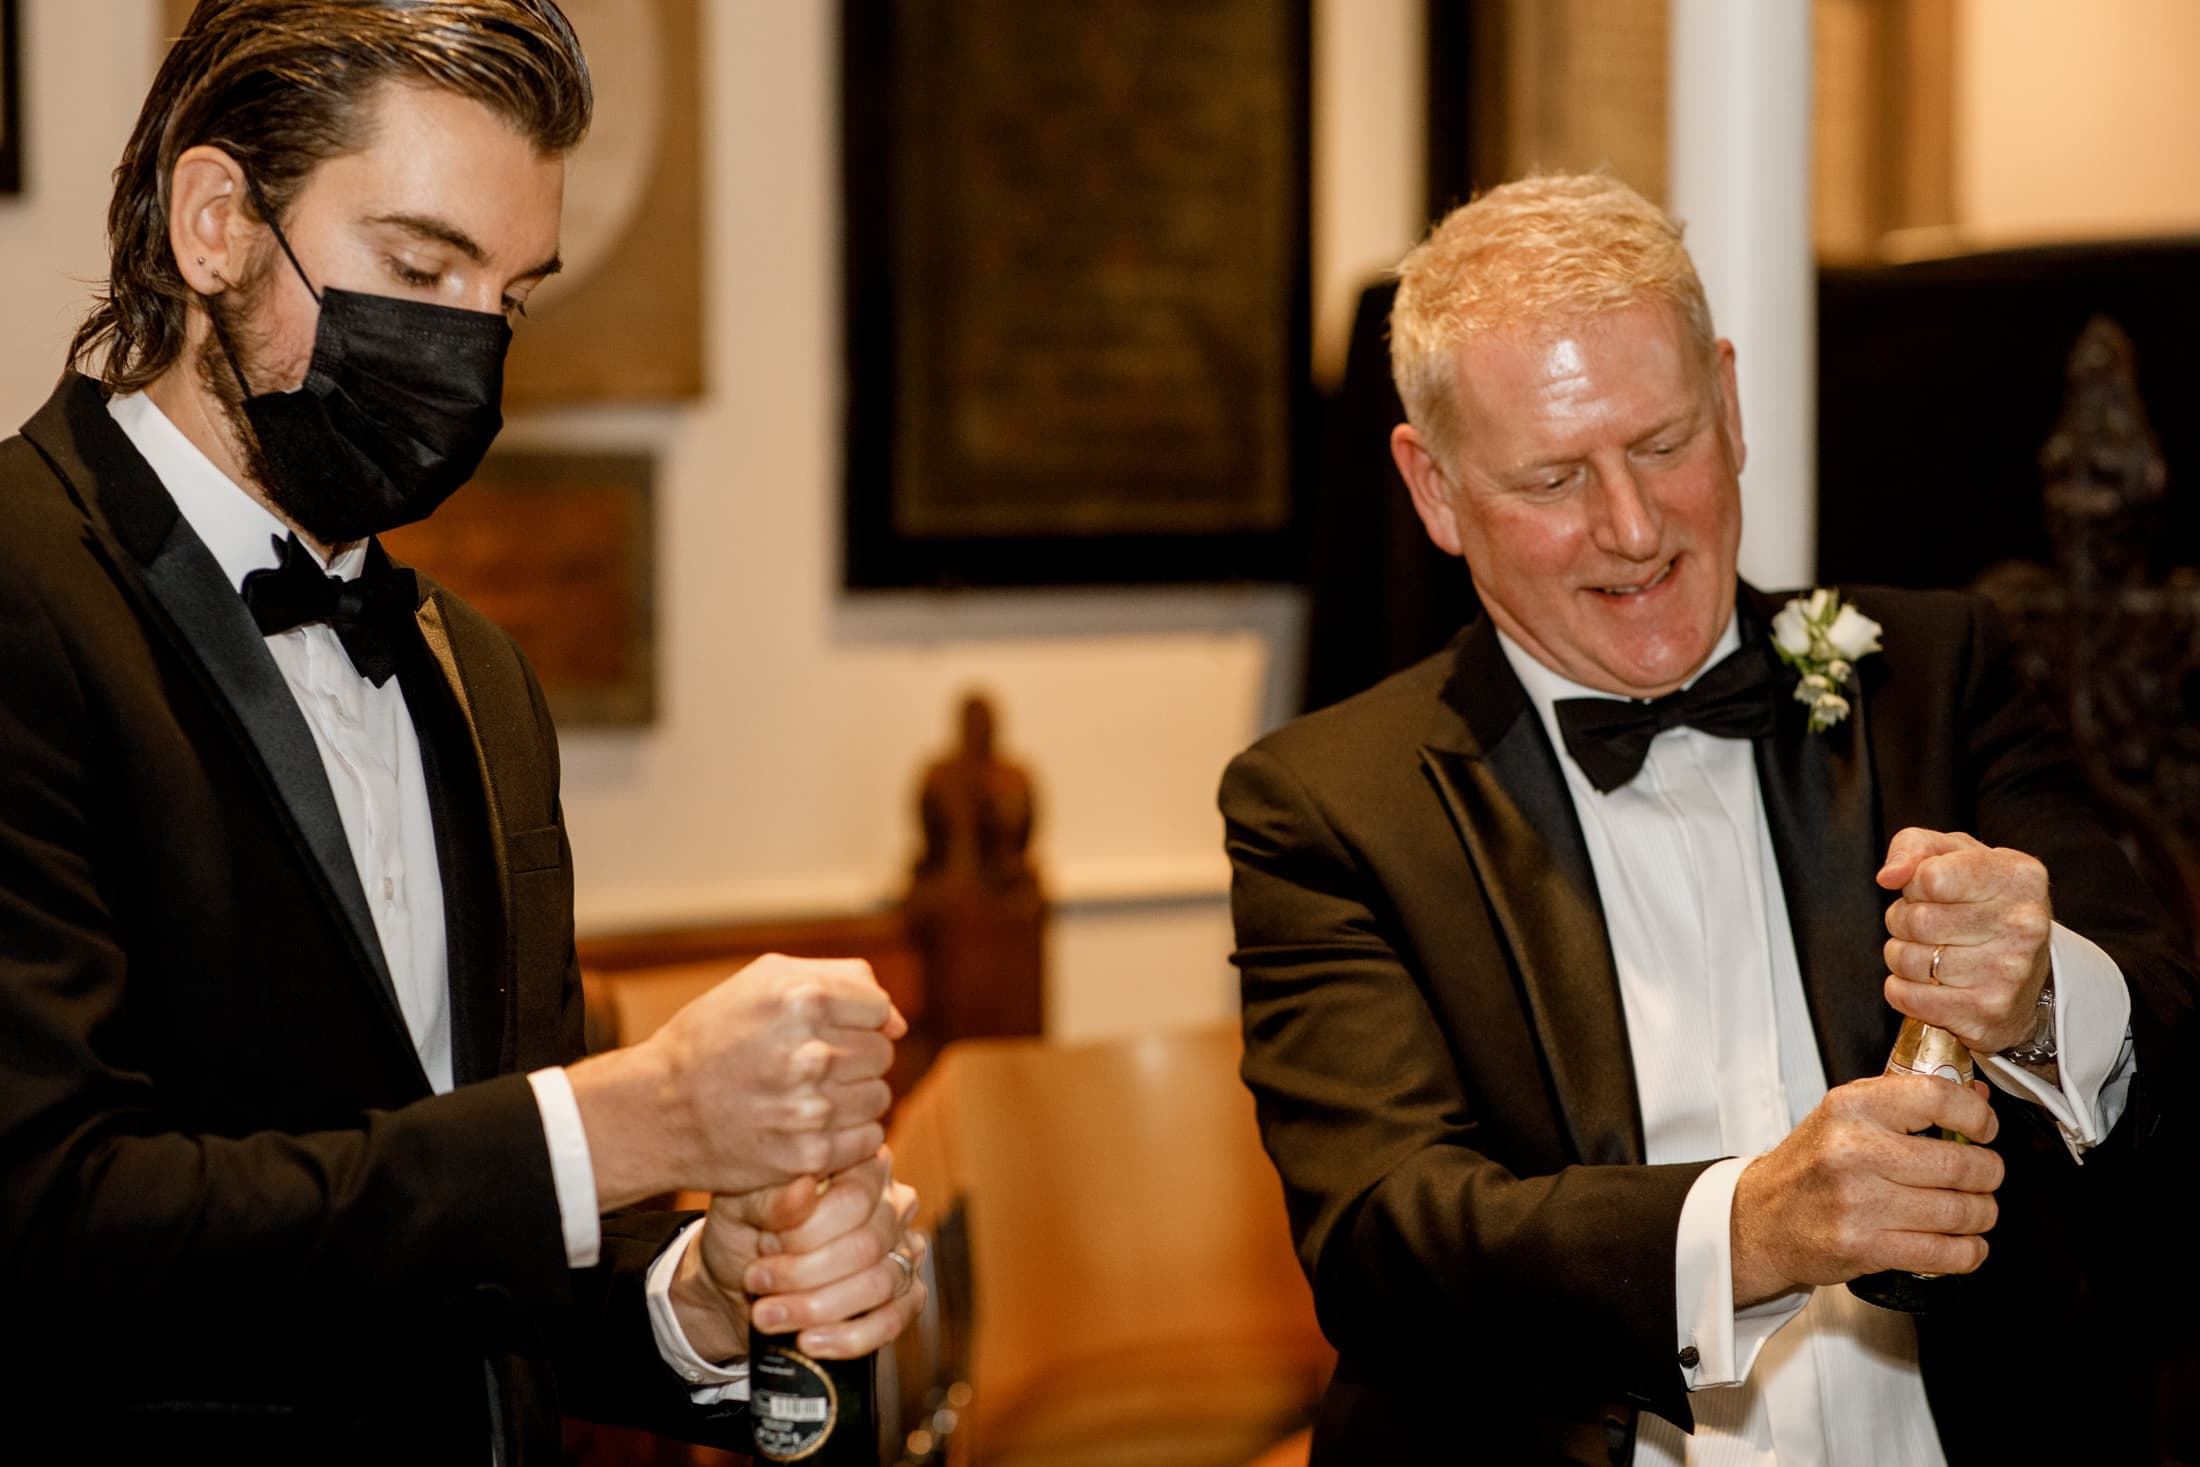 groom and best man opening champagne